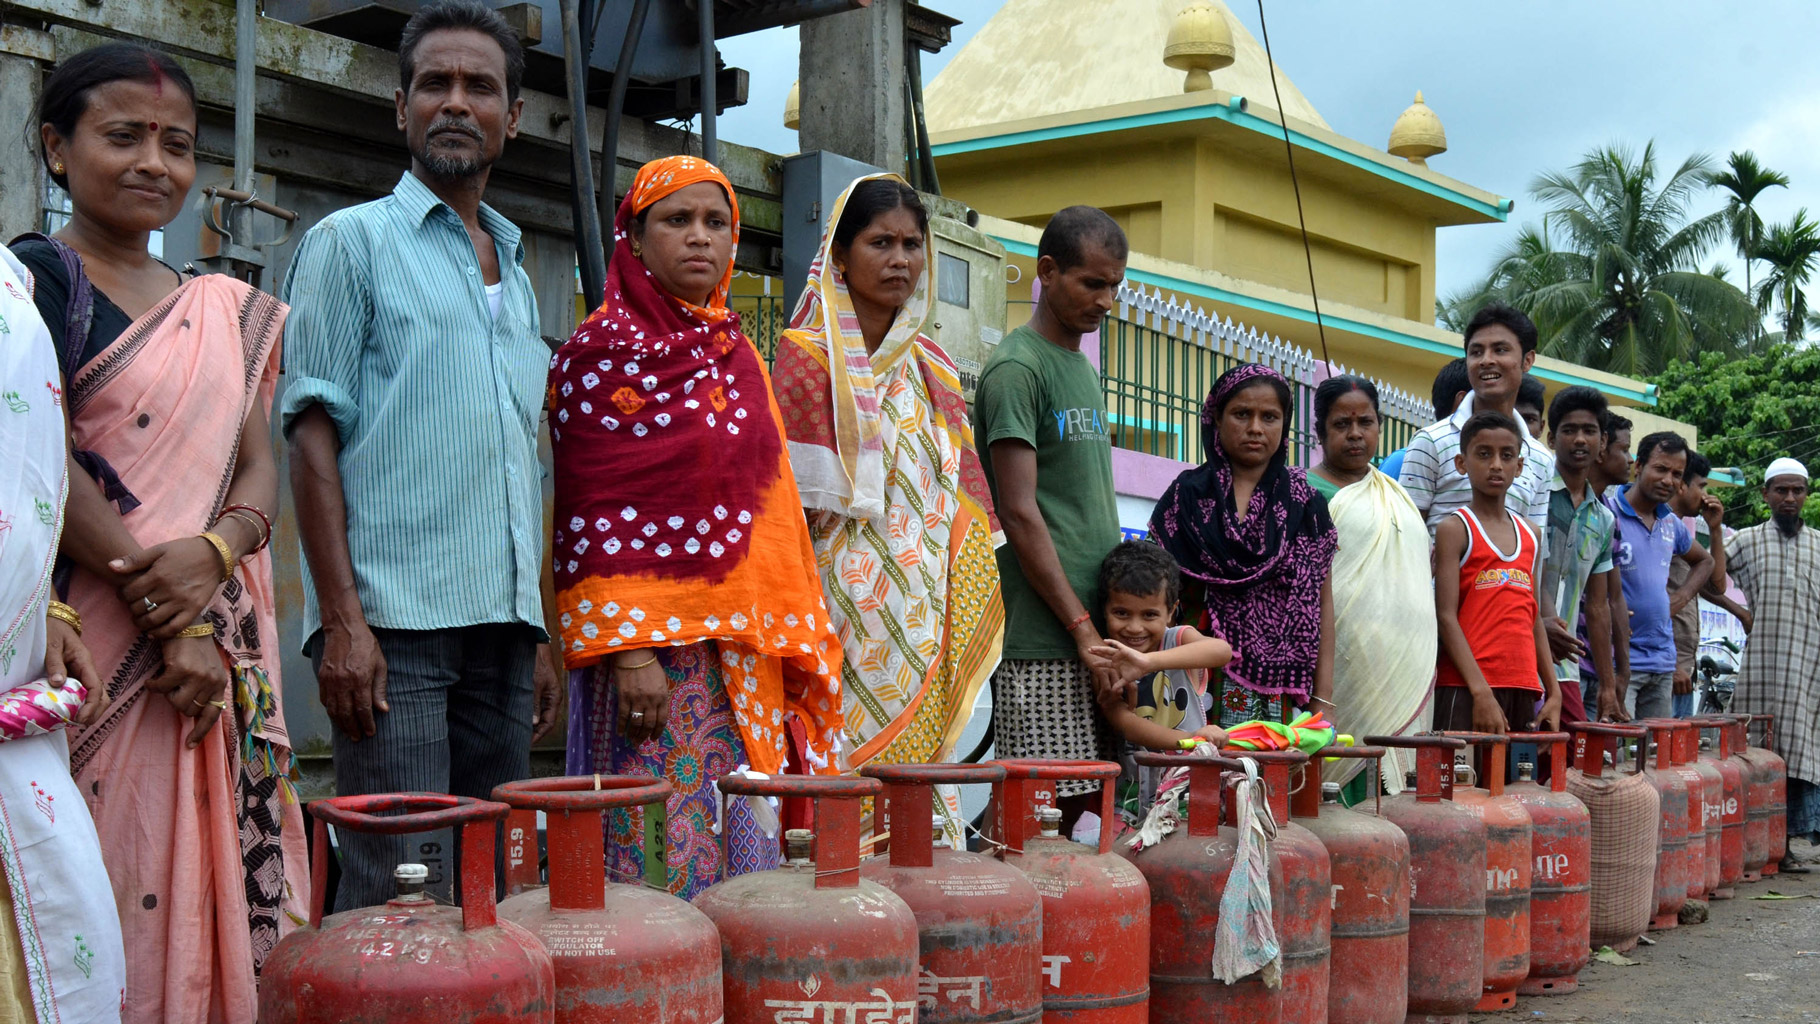 Kitchen Set Ablaze: Odisha Opposes End Of Subsidy On LPG Cylinders